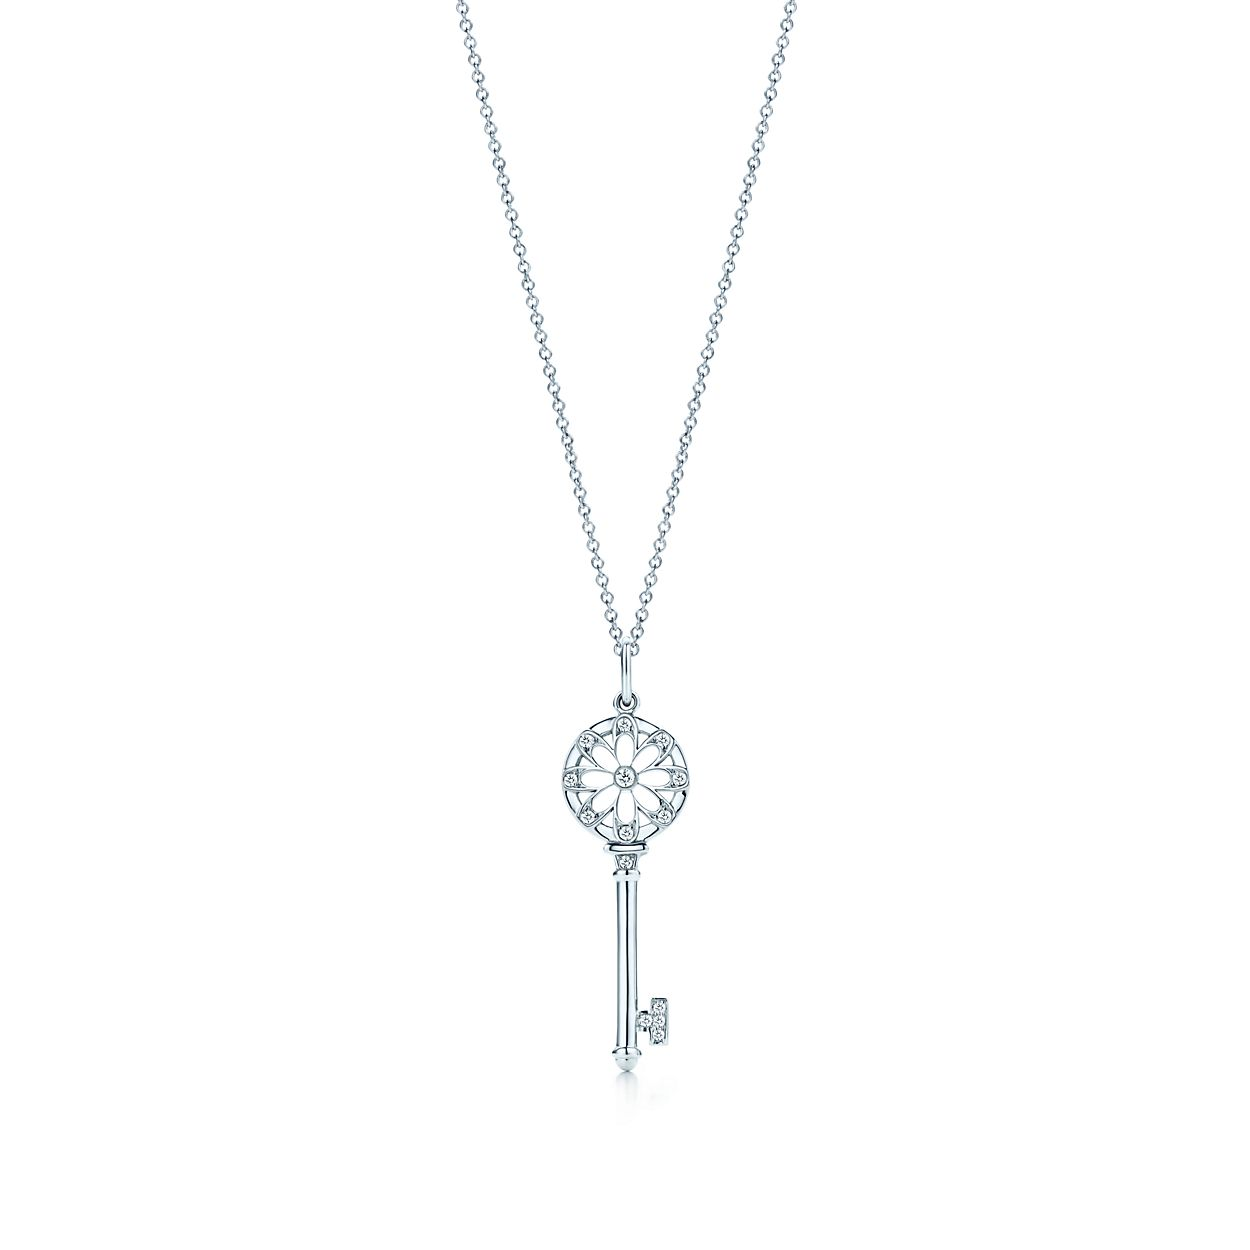 Tiffany keys floral key pendant in 18k white gold with diamonds tiffany keysfloral key pendant aloadofball Images